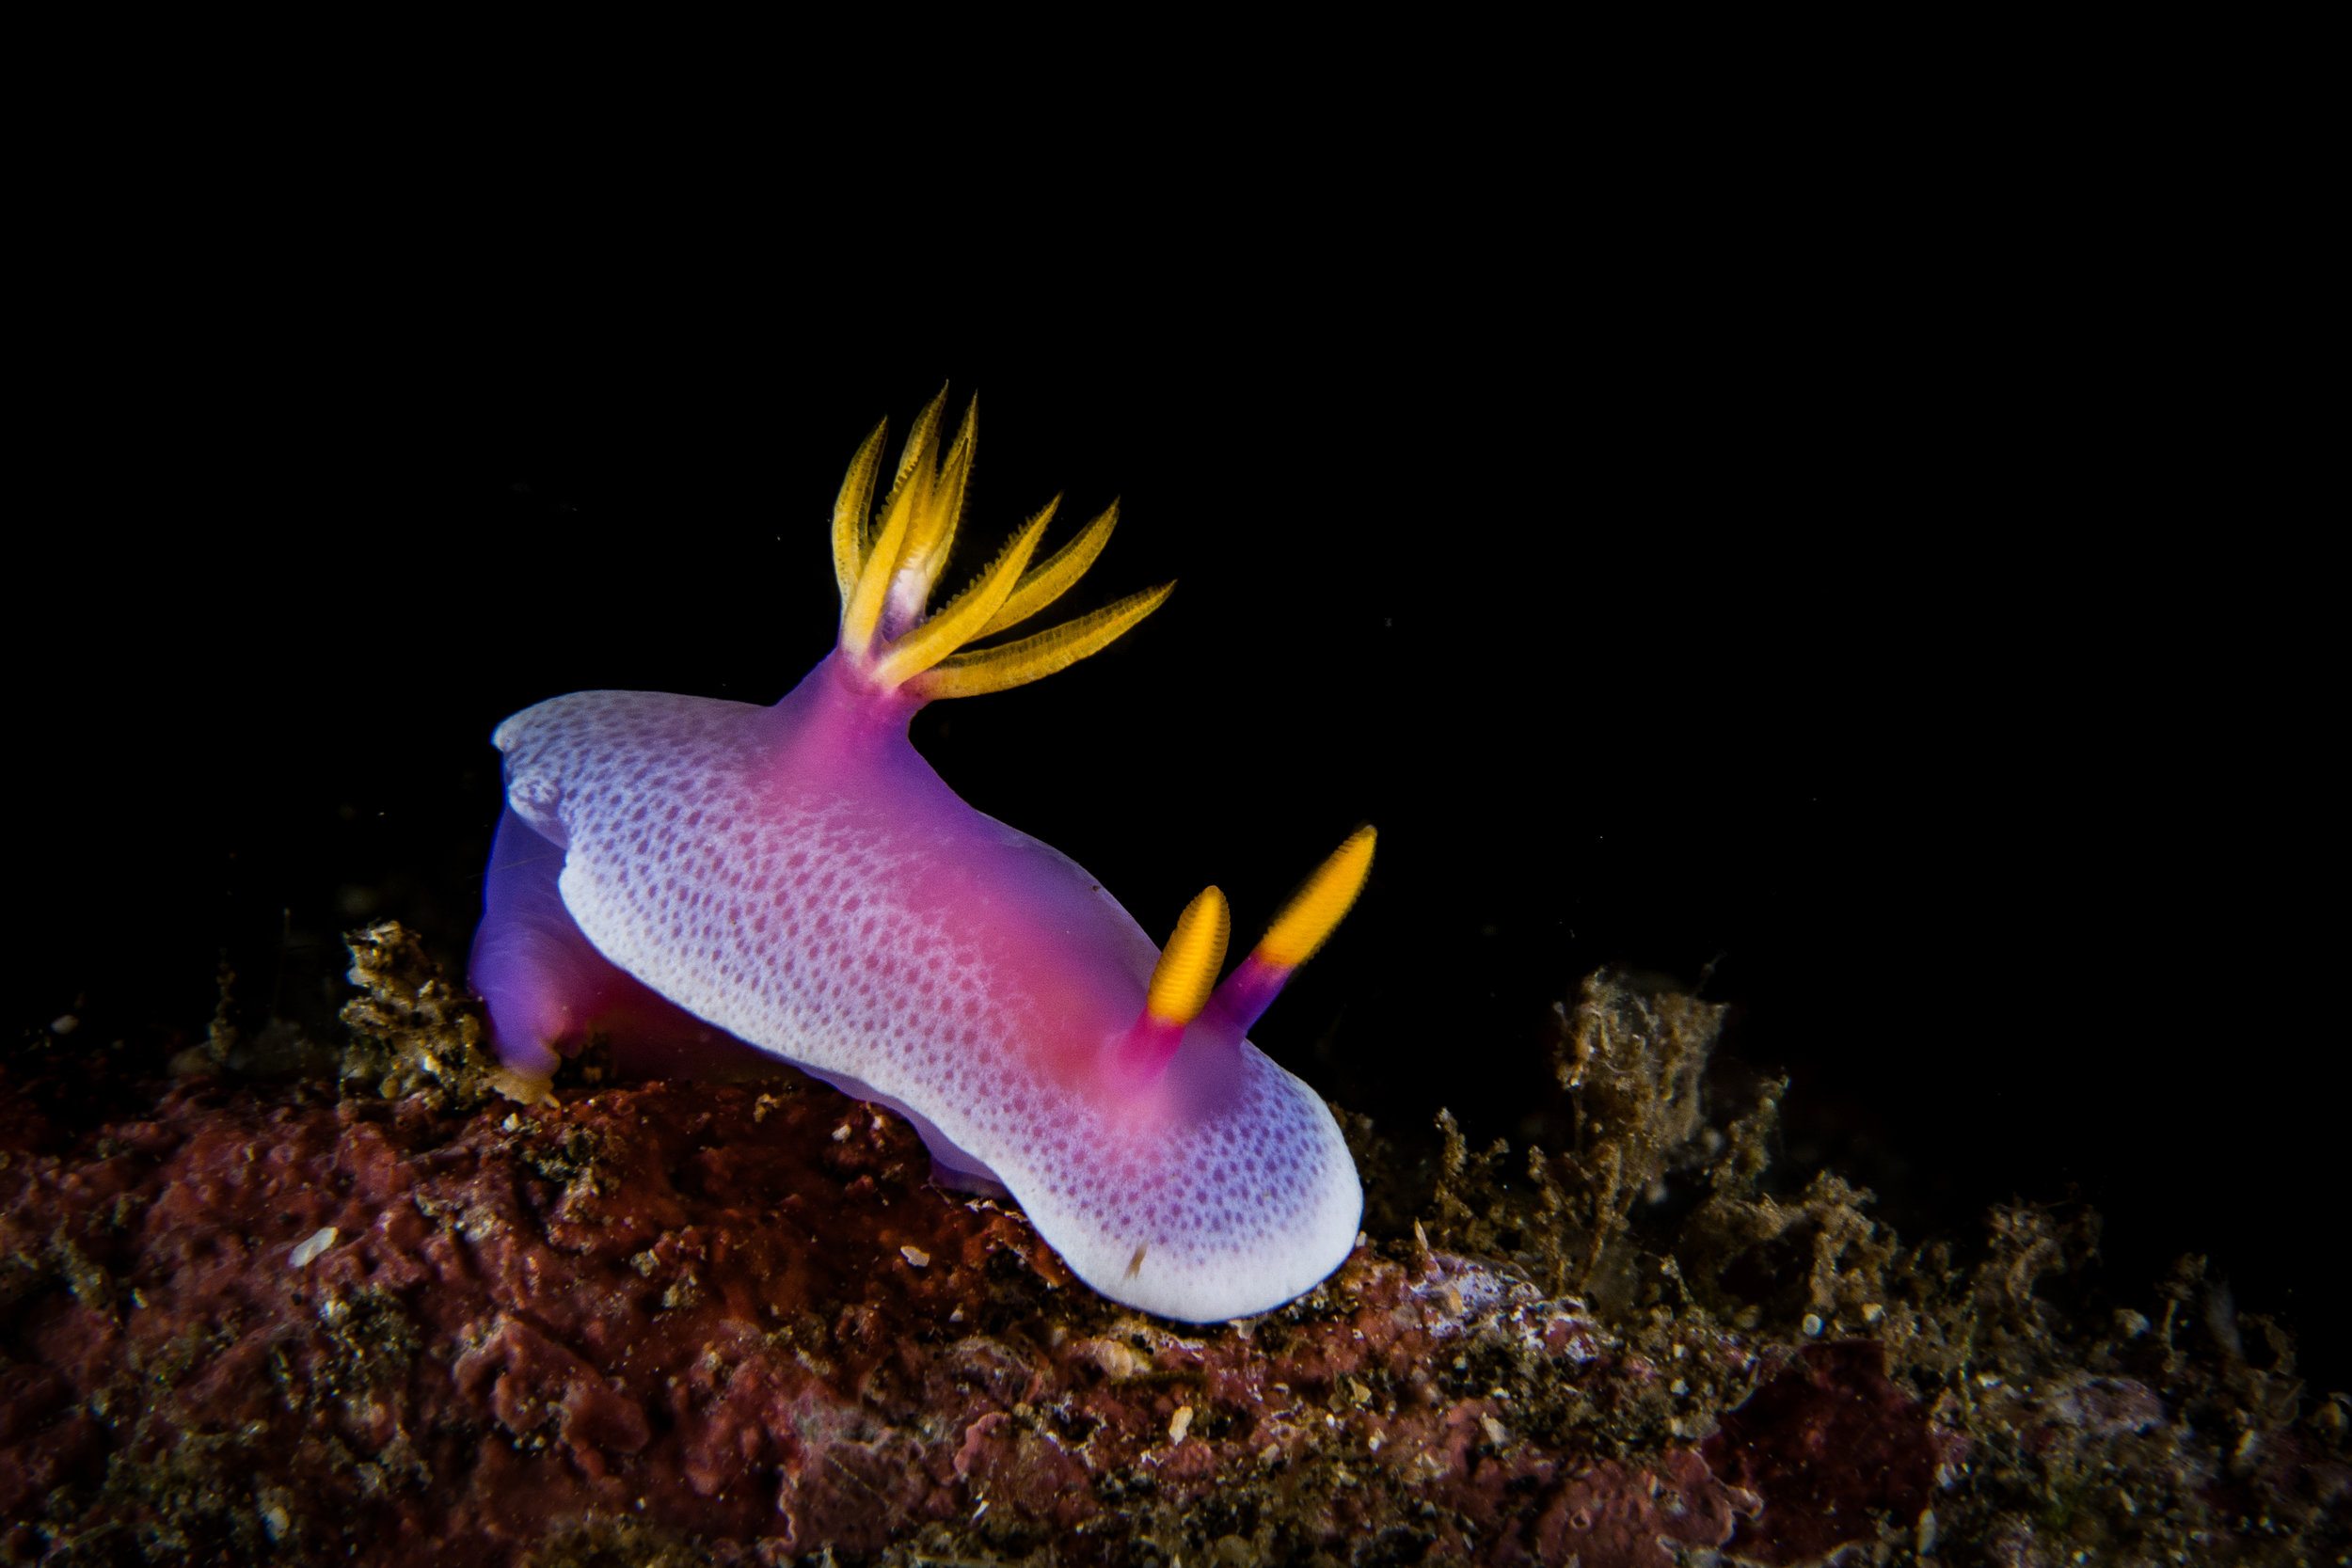 PURPLE SEA SLUG CREDIT: Wojtek Meczynski / coral reef image bank